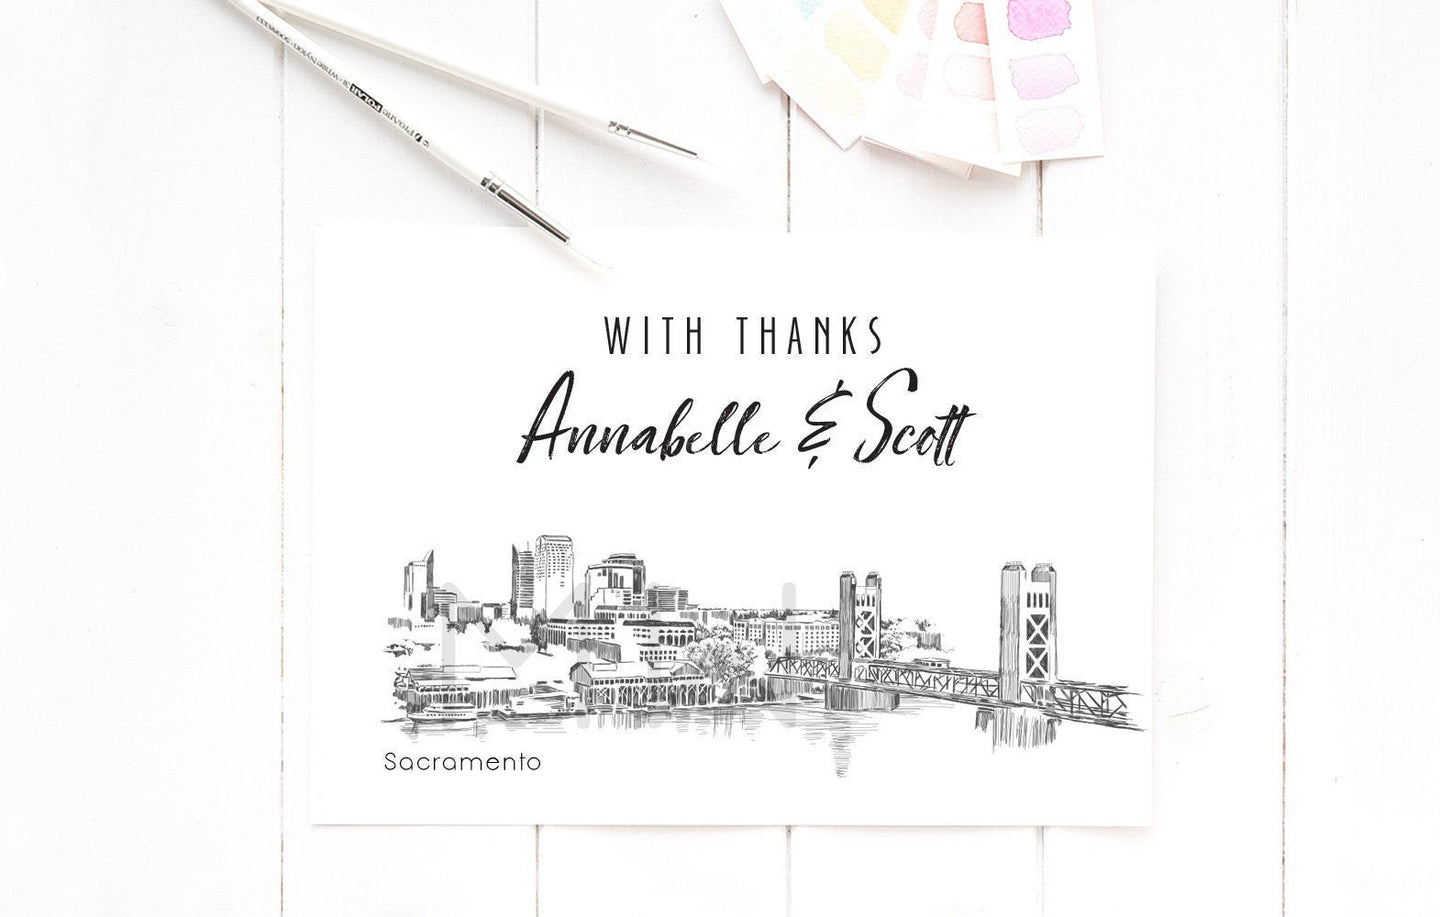 Sacramento Skyline Thank You Cards, Personal Note Cards, Bridal Shower Thank you Card Set, Corporate Thank you Cards (set of 25 cards)